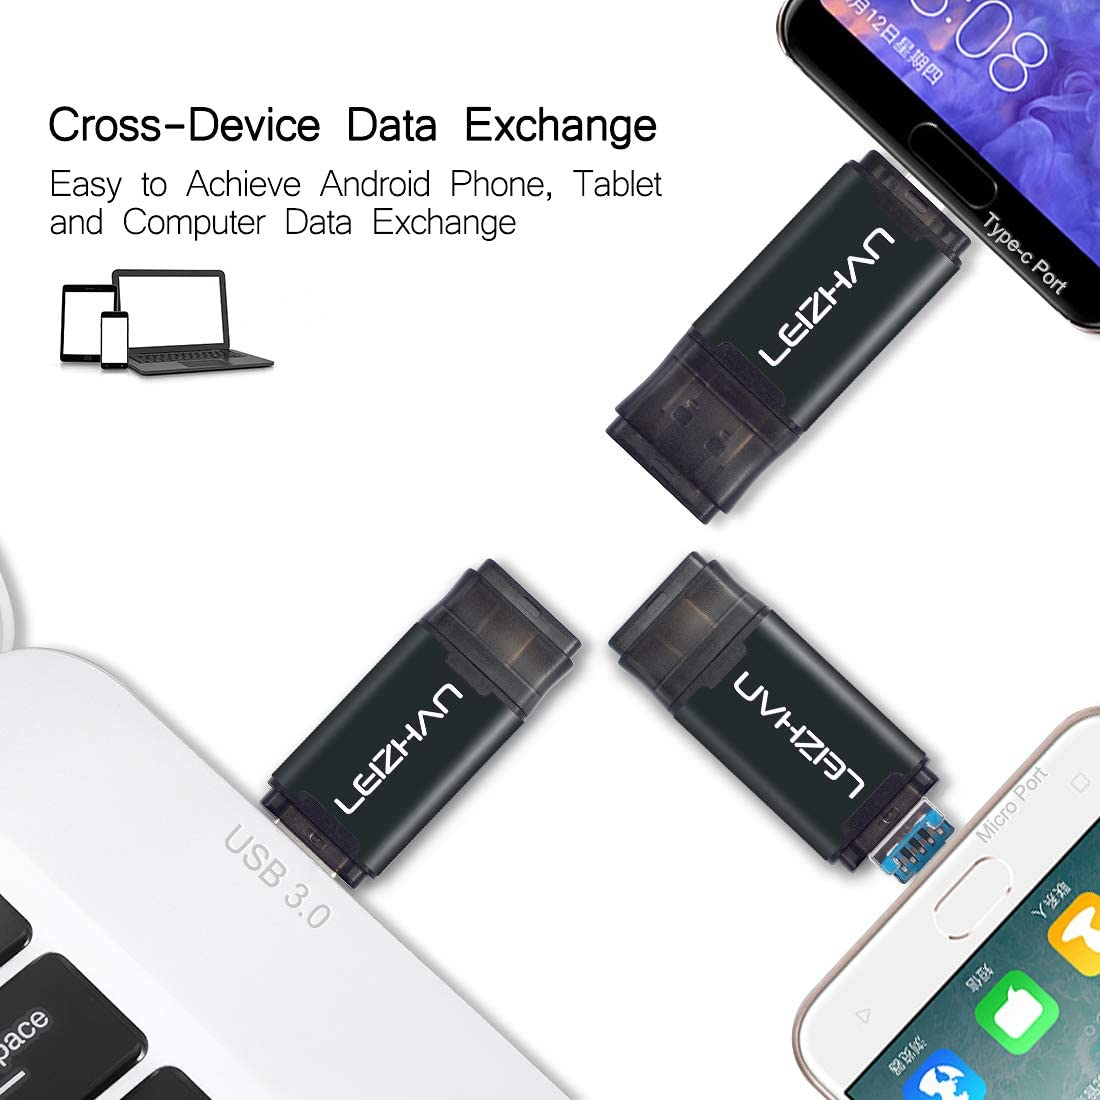 Note 8,S10 S9 S8 S7 S6 S5,Google Pixel Note 9 Type-C Flash Drive USB 3.0 Android Micro Memory Stick,64GB Phone Picture Stick for Samsung Galaxy Note 10